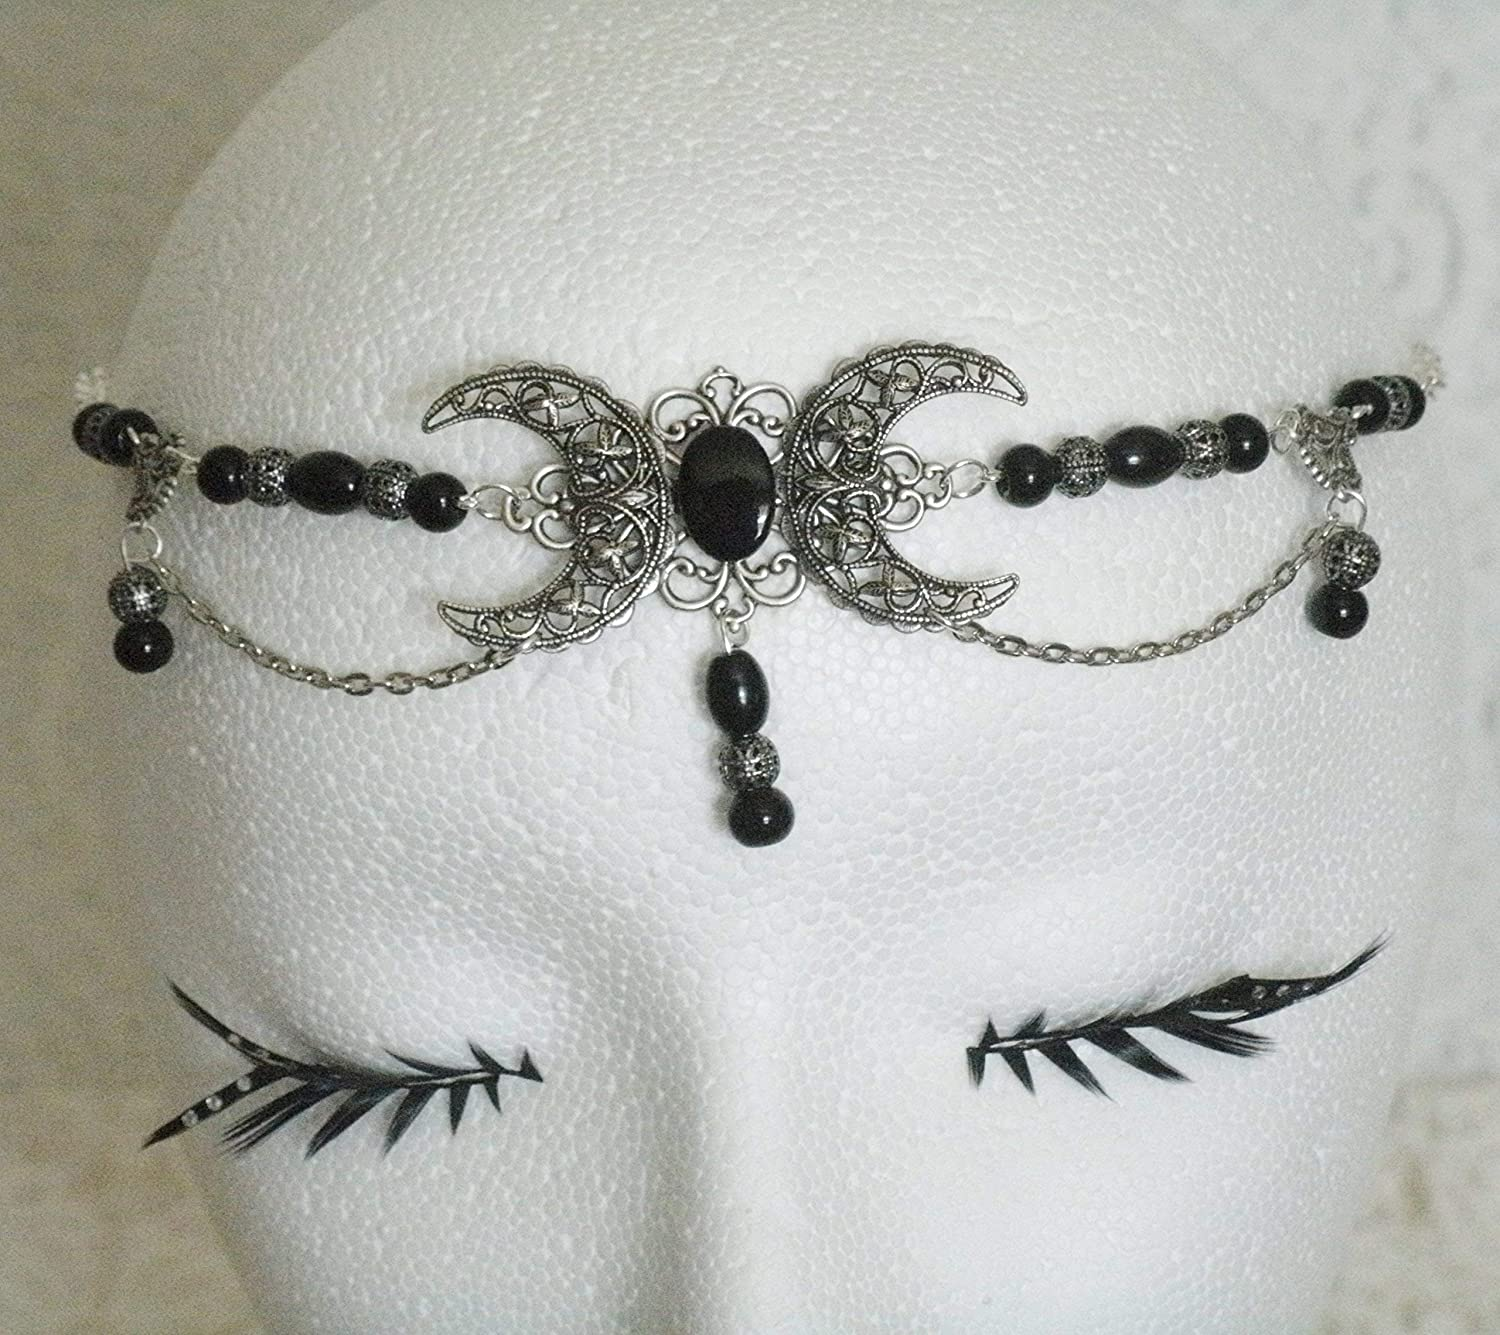 Black Onyx Triple Moon Circlet handmade jewelry wiccan pagan wicca witch witchcraft goddess gothic